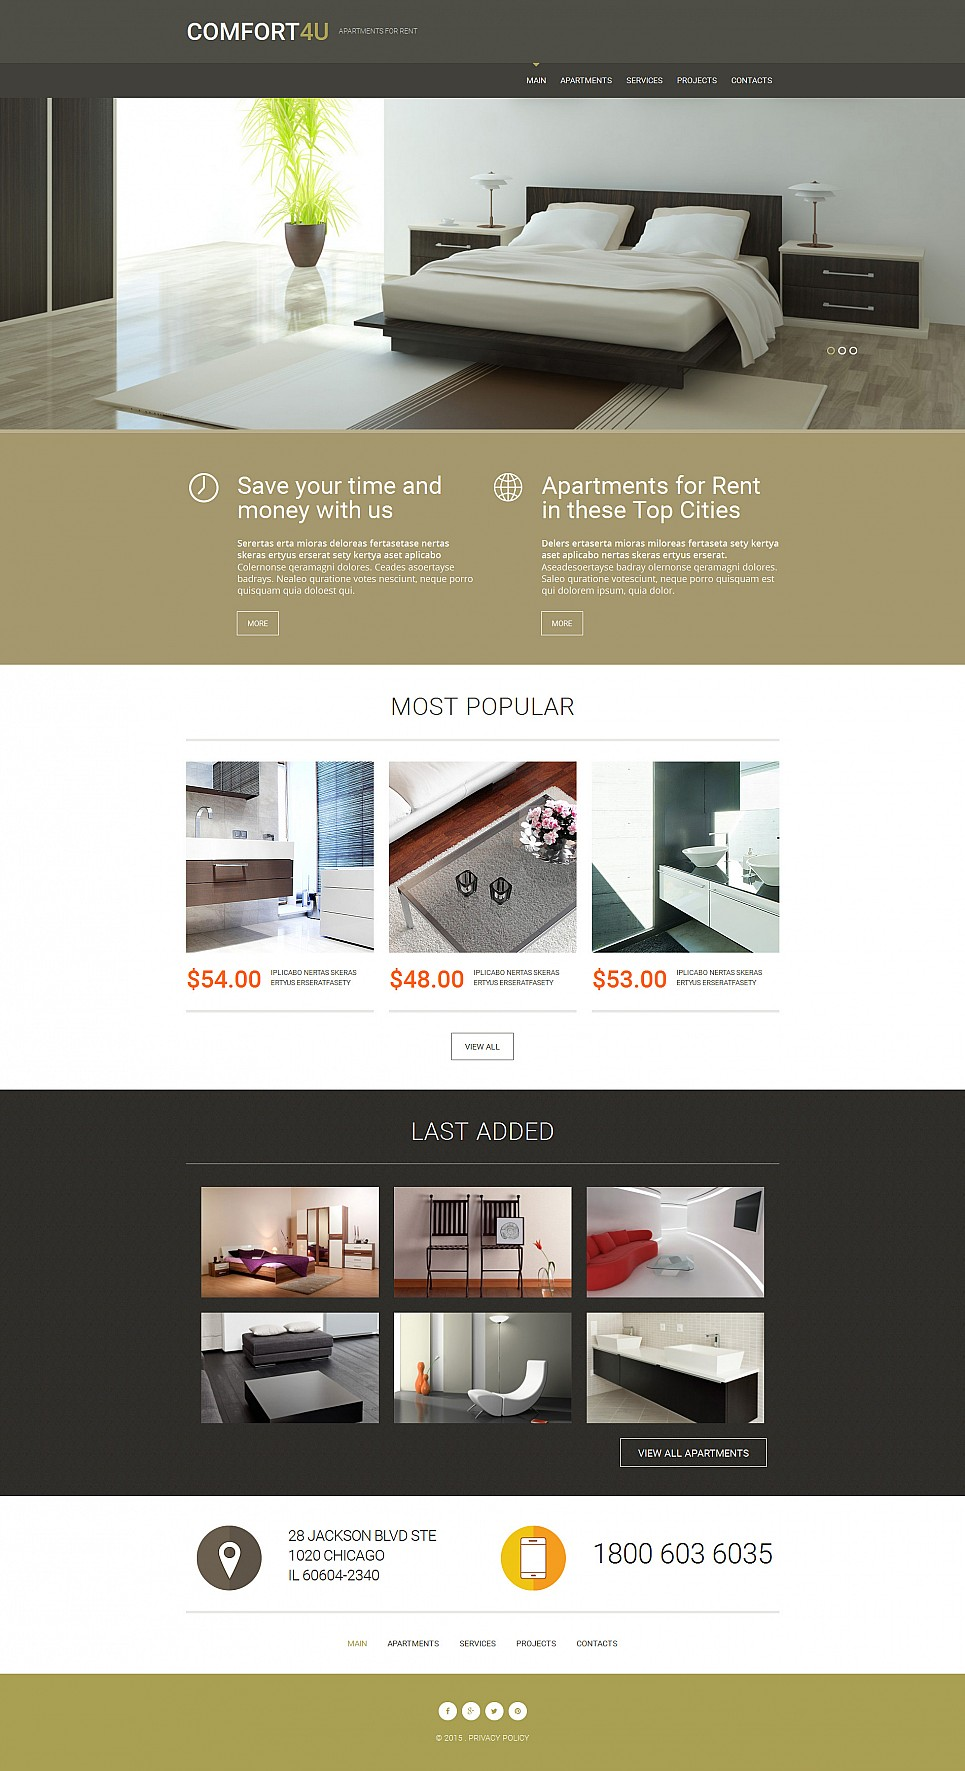 Property Search Website Template - image